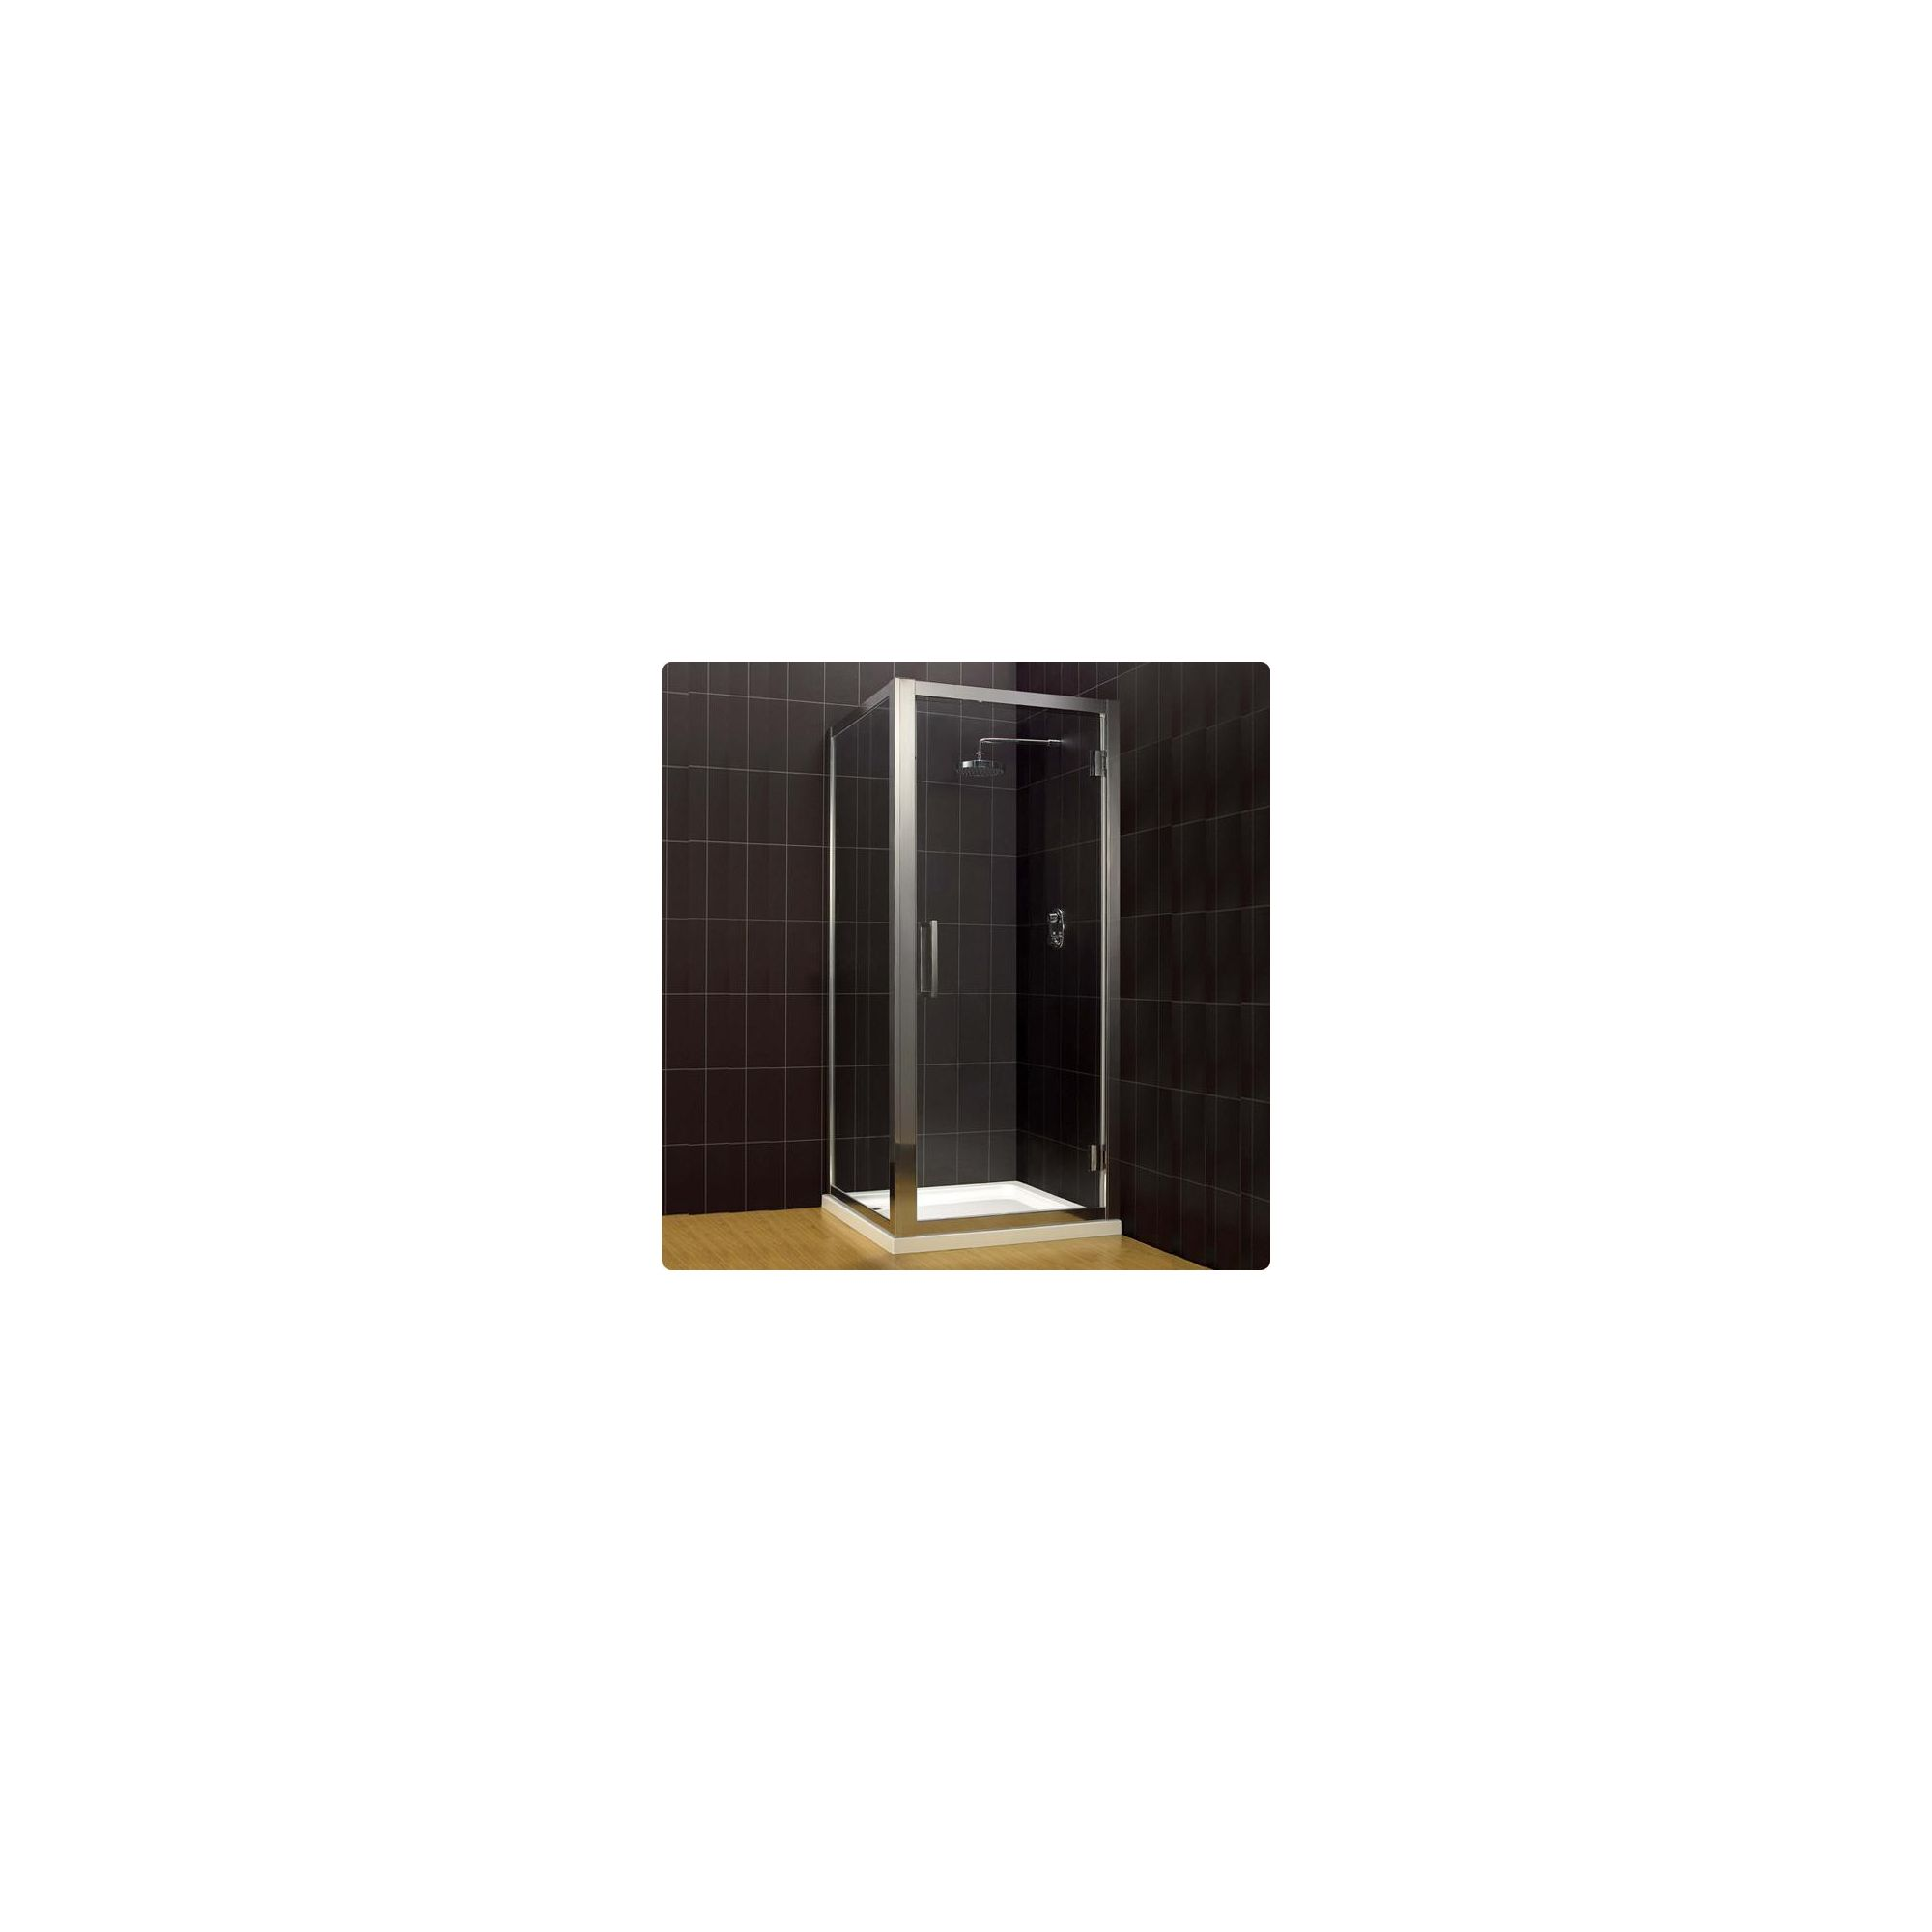 Duchy Supreme Silver Hinged Door Shower Enclosure with Towel Rail, 800mm x 700mm, Standard Tray, 8mm Glass at Tesco Direct